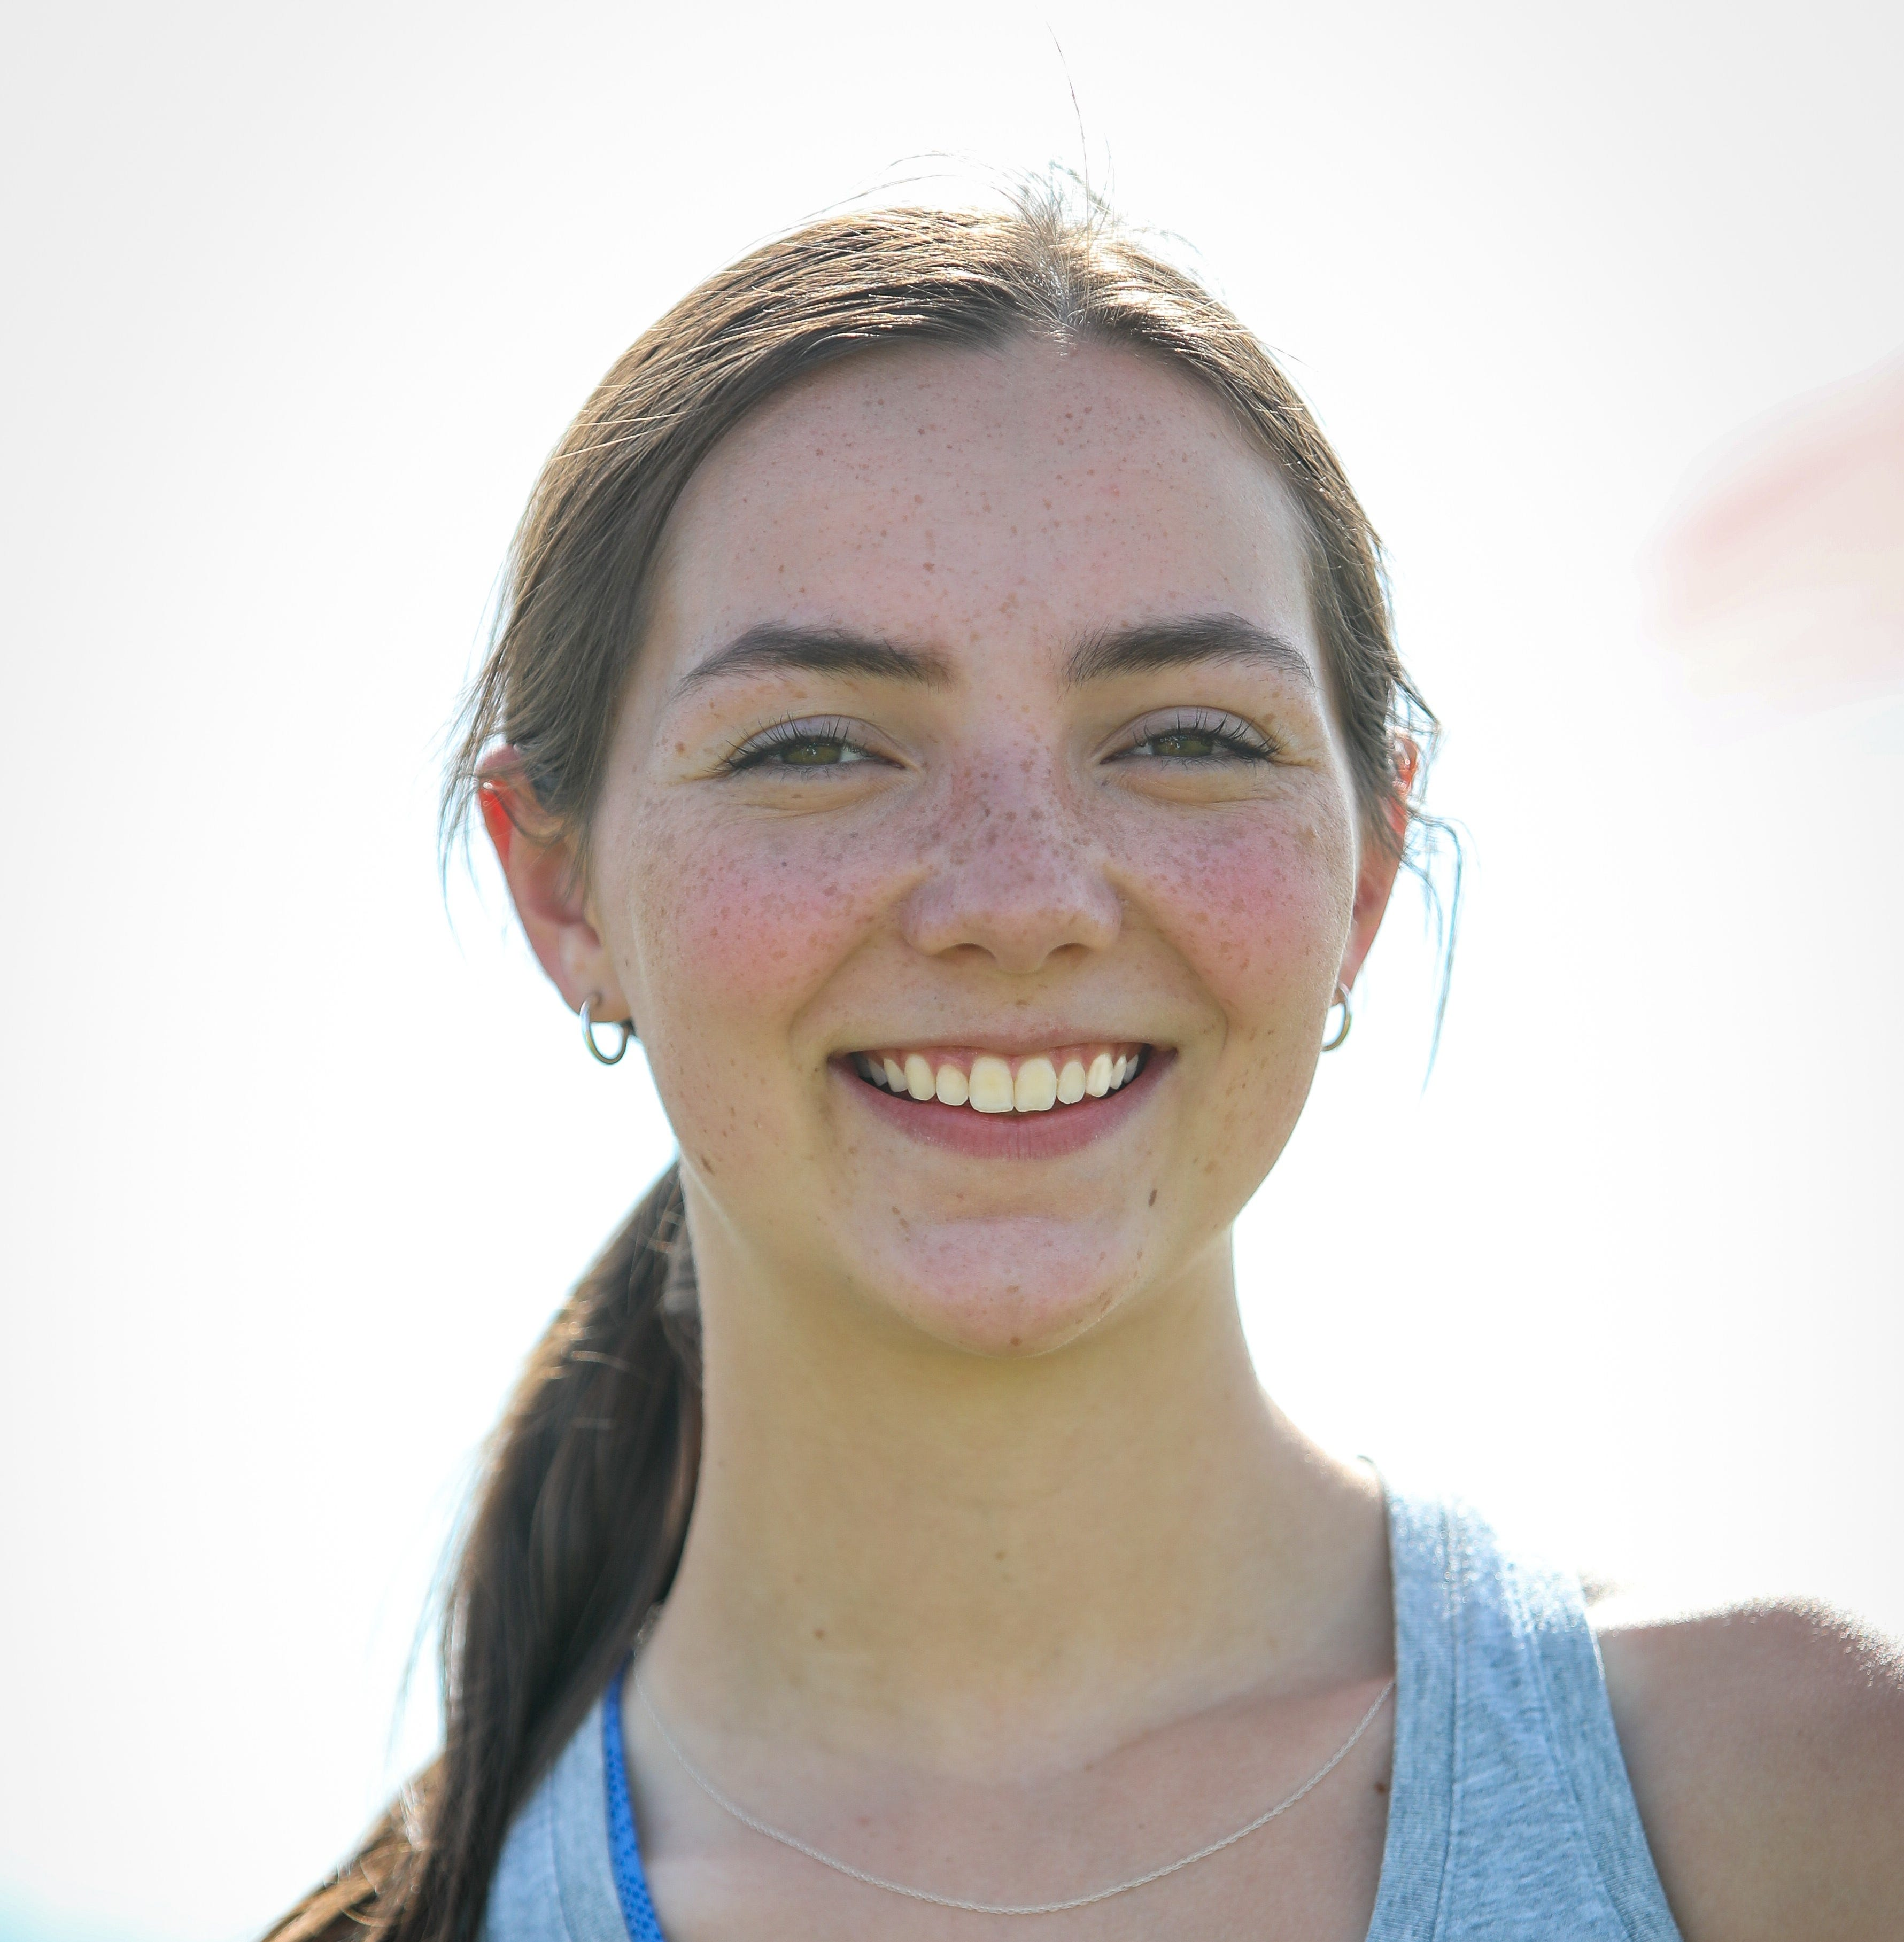 Perrydale track star voted athlete of the week; other Salem area athletes nominated